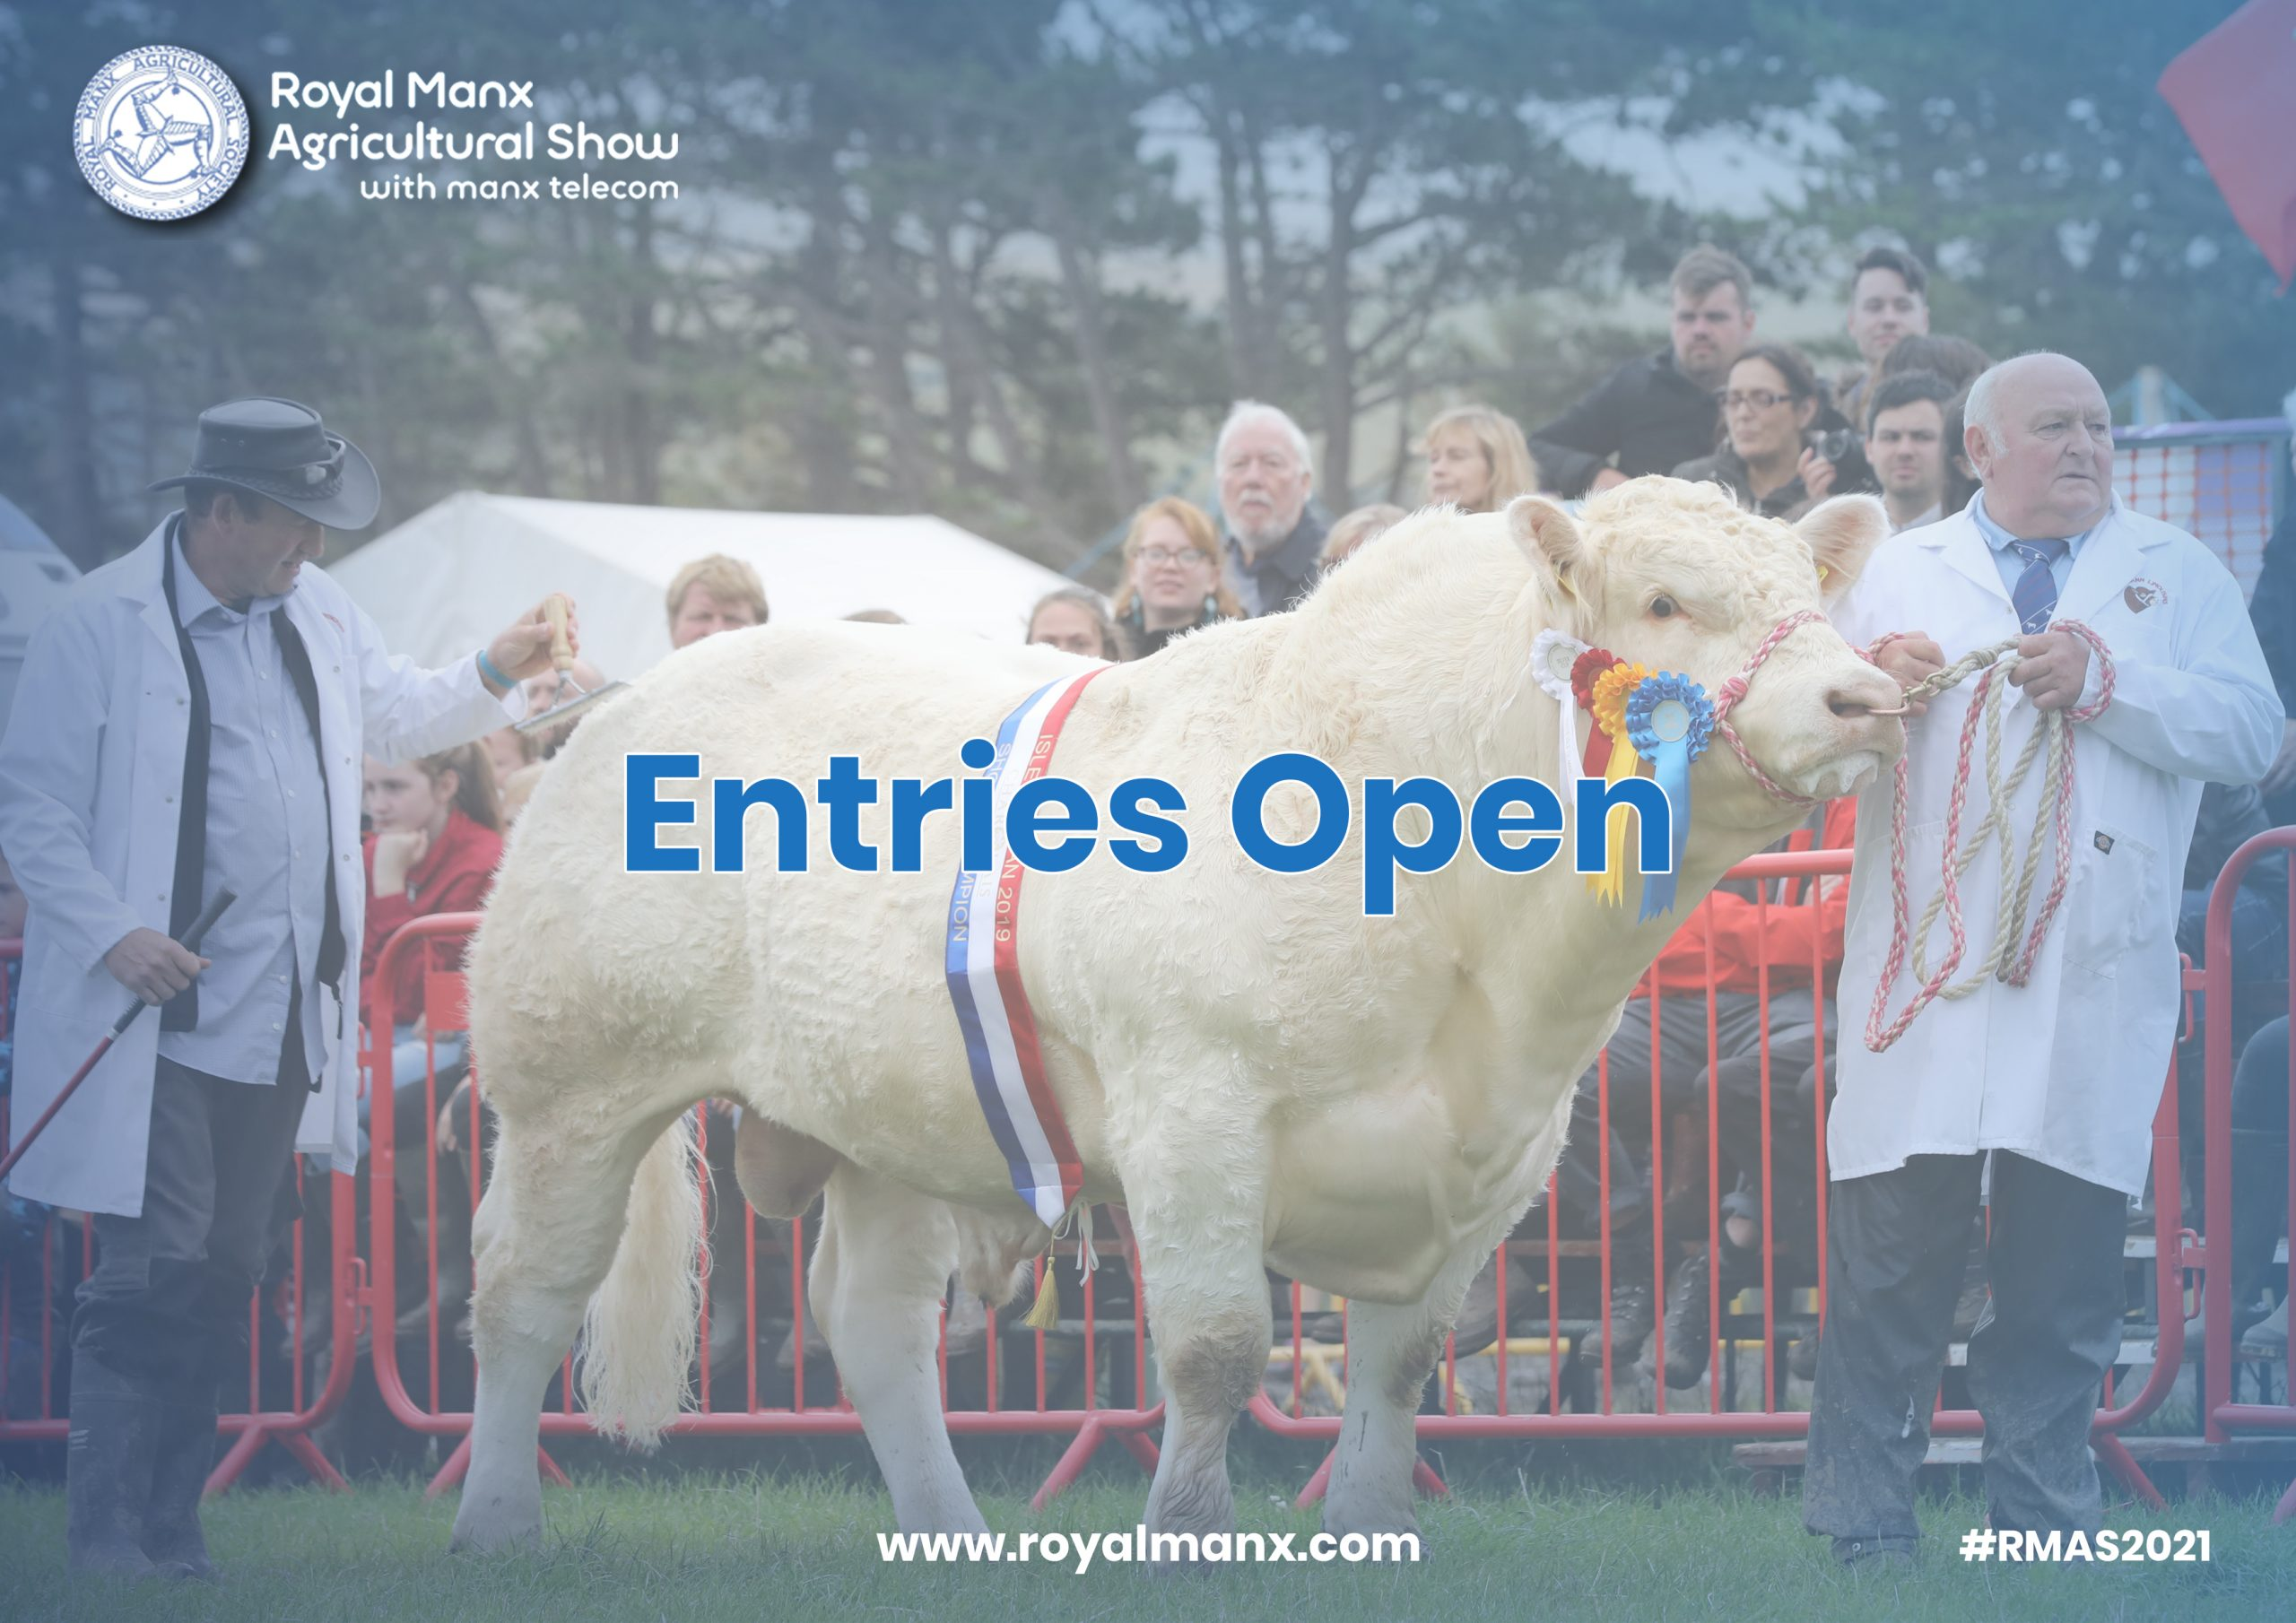 Enter online for this years Royal Manx Agricultural Show